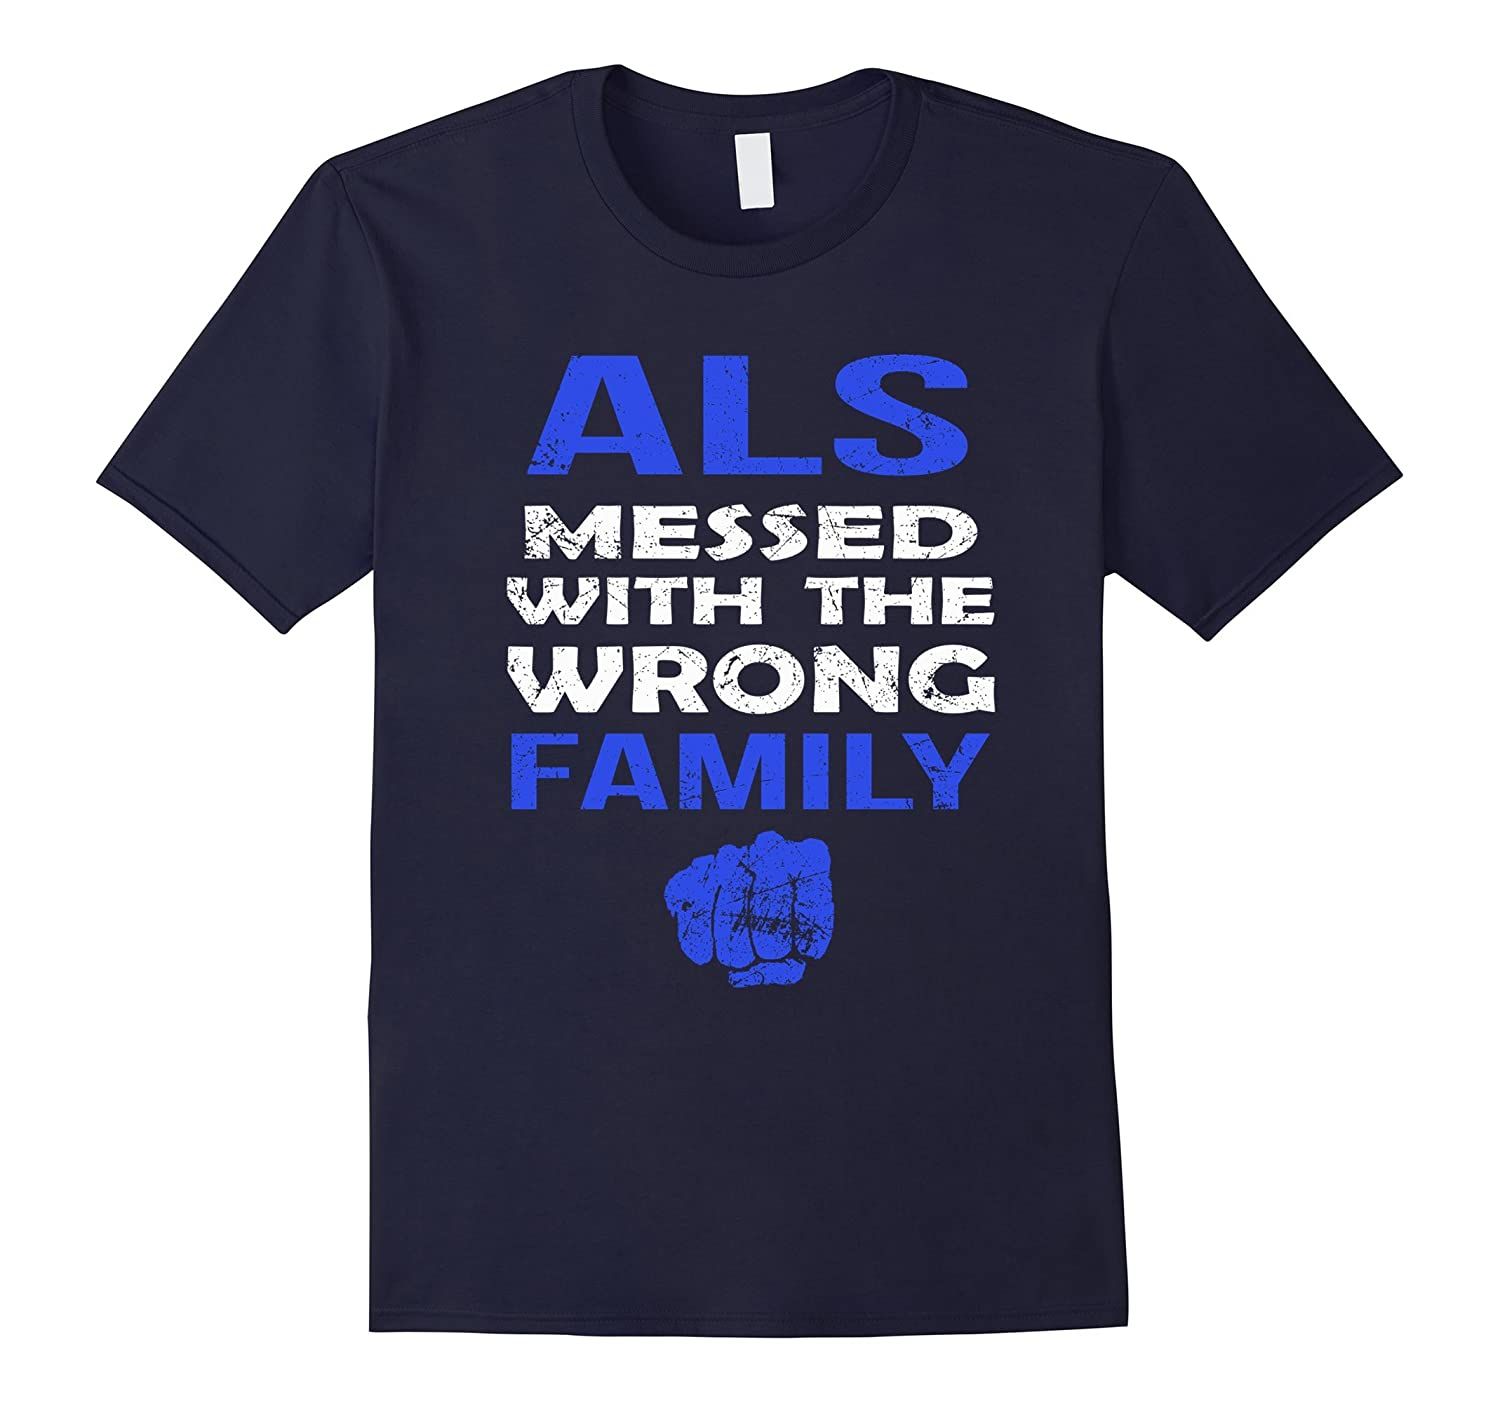 ALS messed with wrong family t shirt-CL